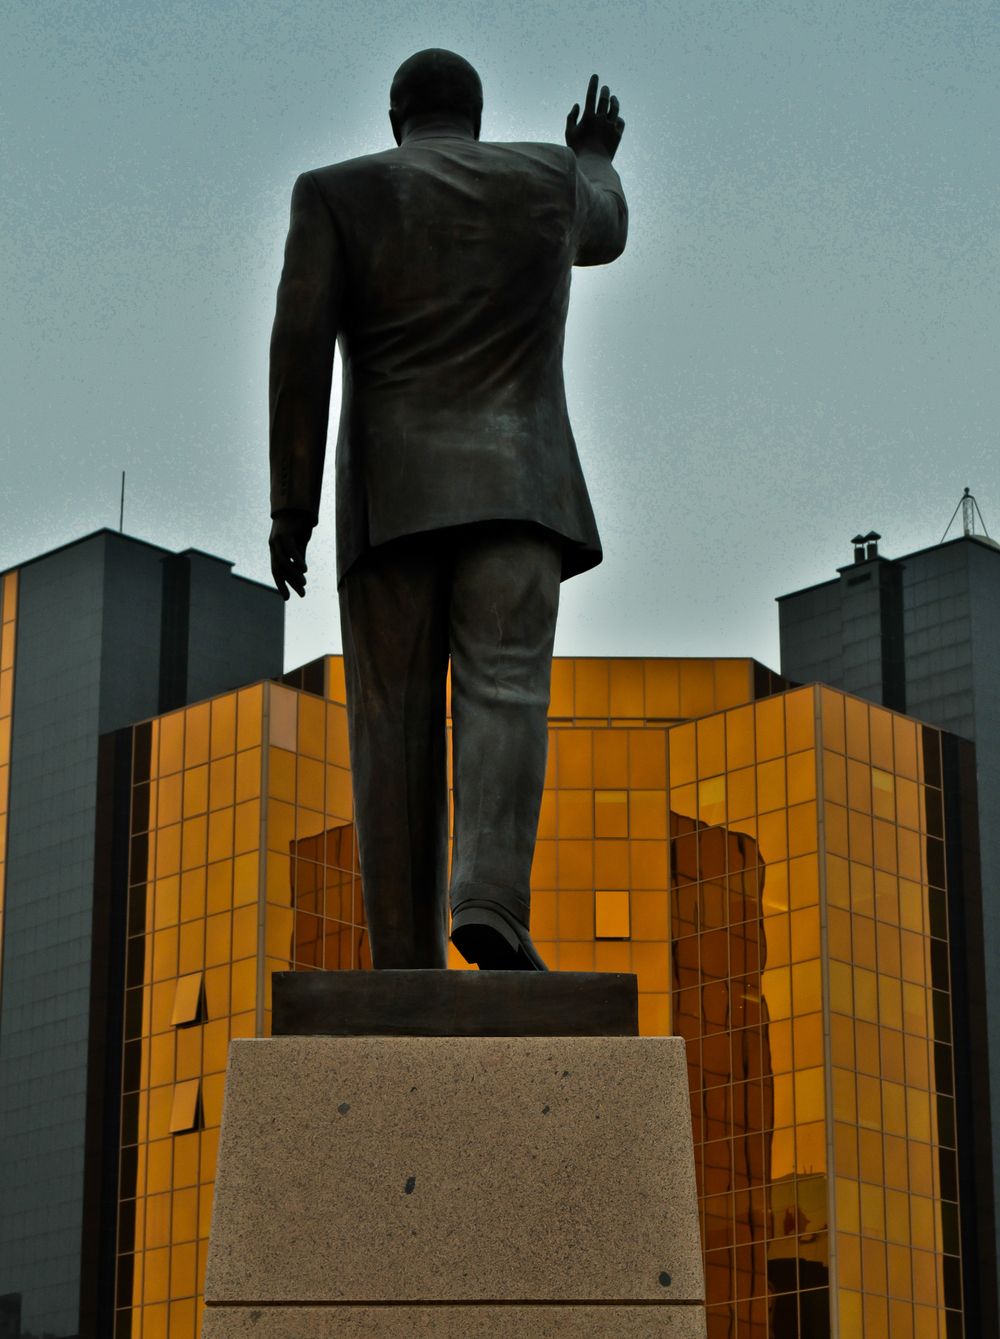 One of the countless monuments to Heydar Aliyev, this one in front of the country's central bank. Heydar was a member of the Soviet Union's leadership before reemerging as the absolute leader of Azerbaijan during the tumulteous period of indepedence and war in the early 1990's. He is widely credited with creating both the stability and the monopoly on political power exhibited by the government of his son - and current president - Ilham Aliyev.